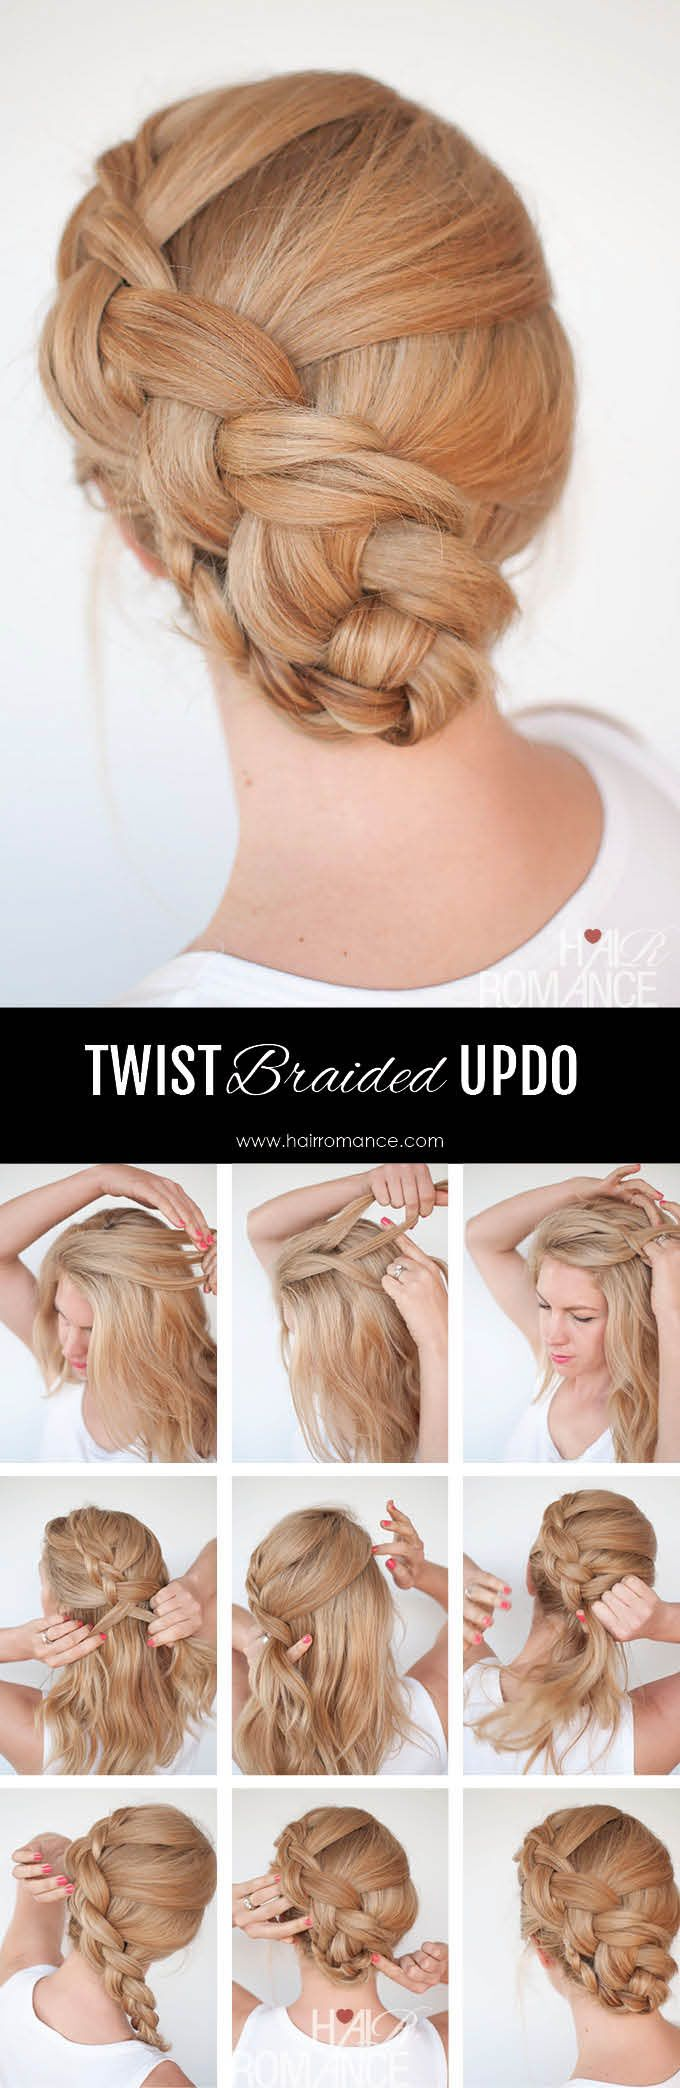 Braided hairstyles are always fun and it adds and extra definition to your look. Give your regular monotonous hairstyle a boost with the touch of Jumbo French Braid and make your look more defined